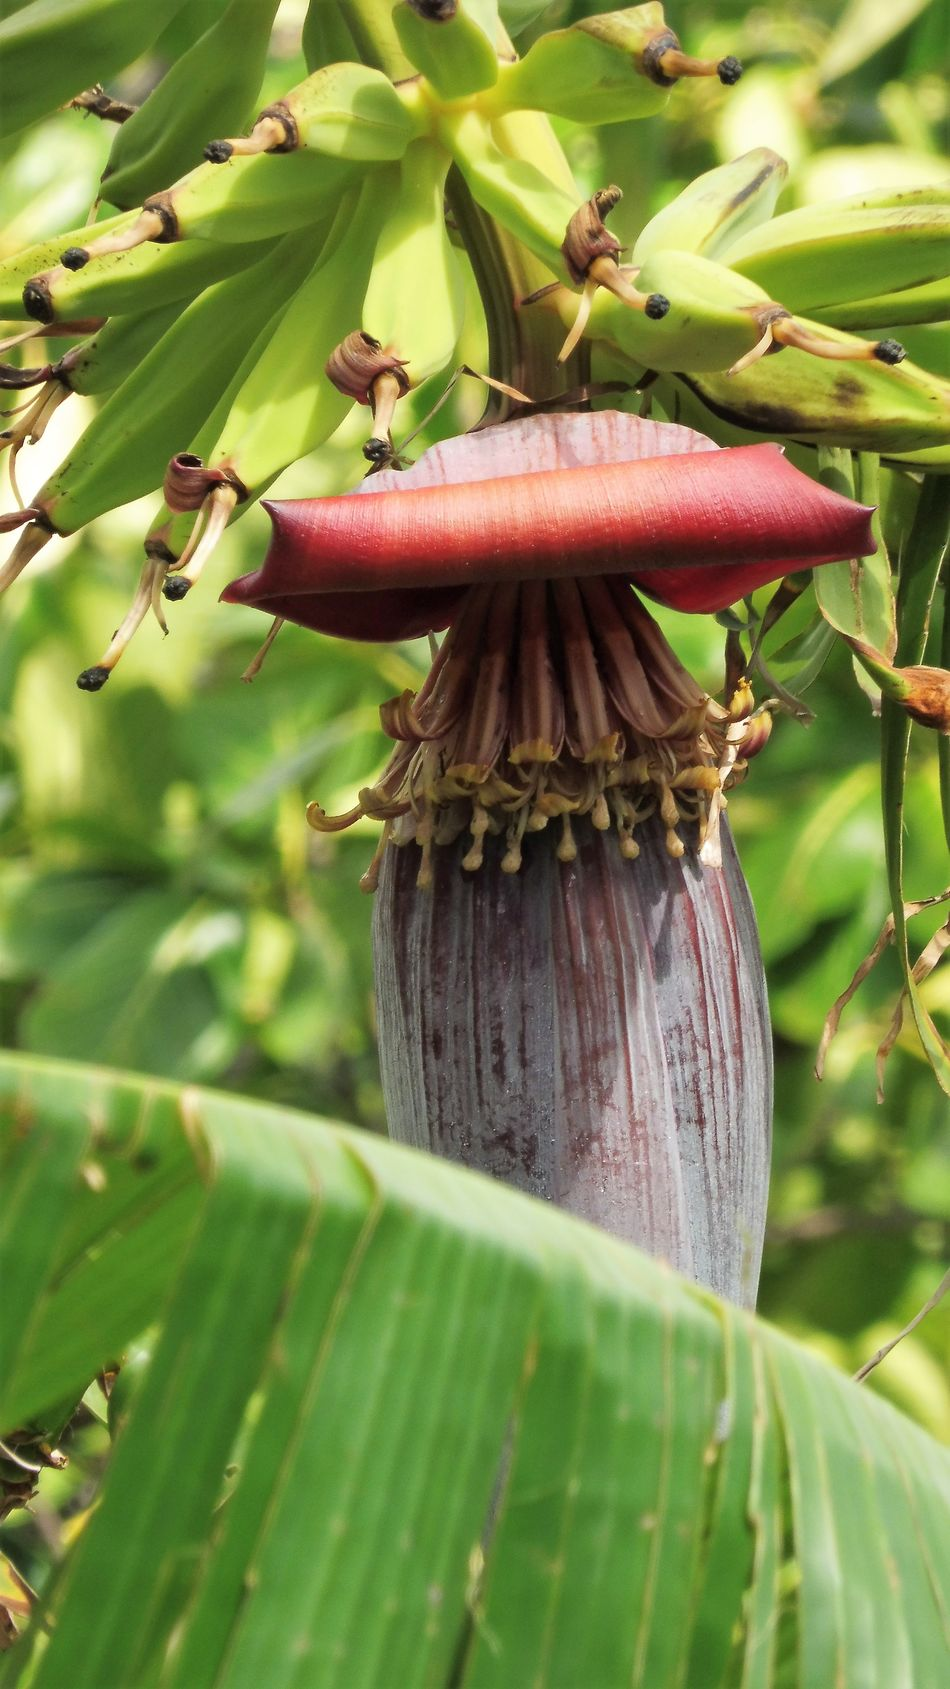 Banana Flower Beauty In Nature Green Bananas Guadeloupe Leaf Nature No People Tree Food And Drink Lumix